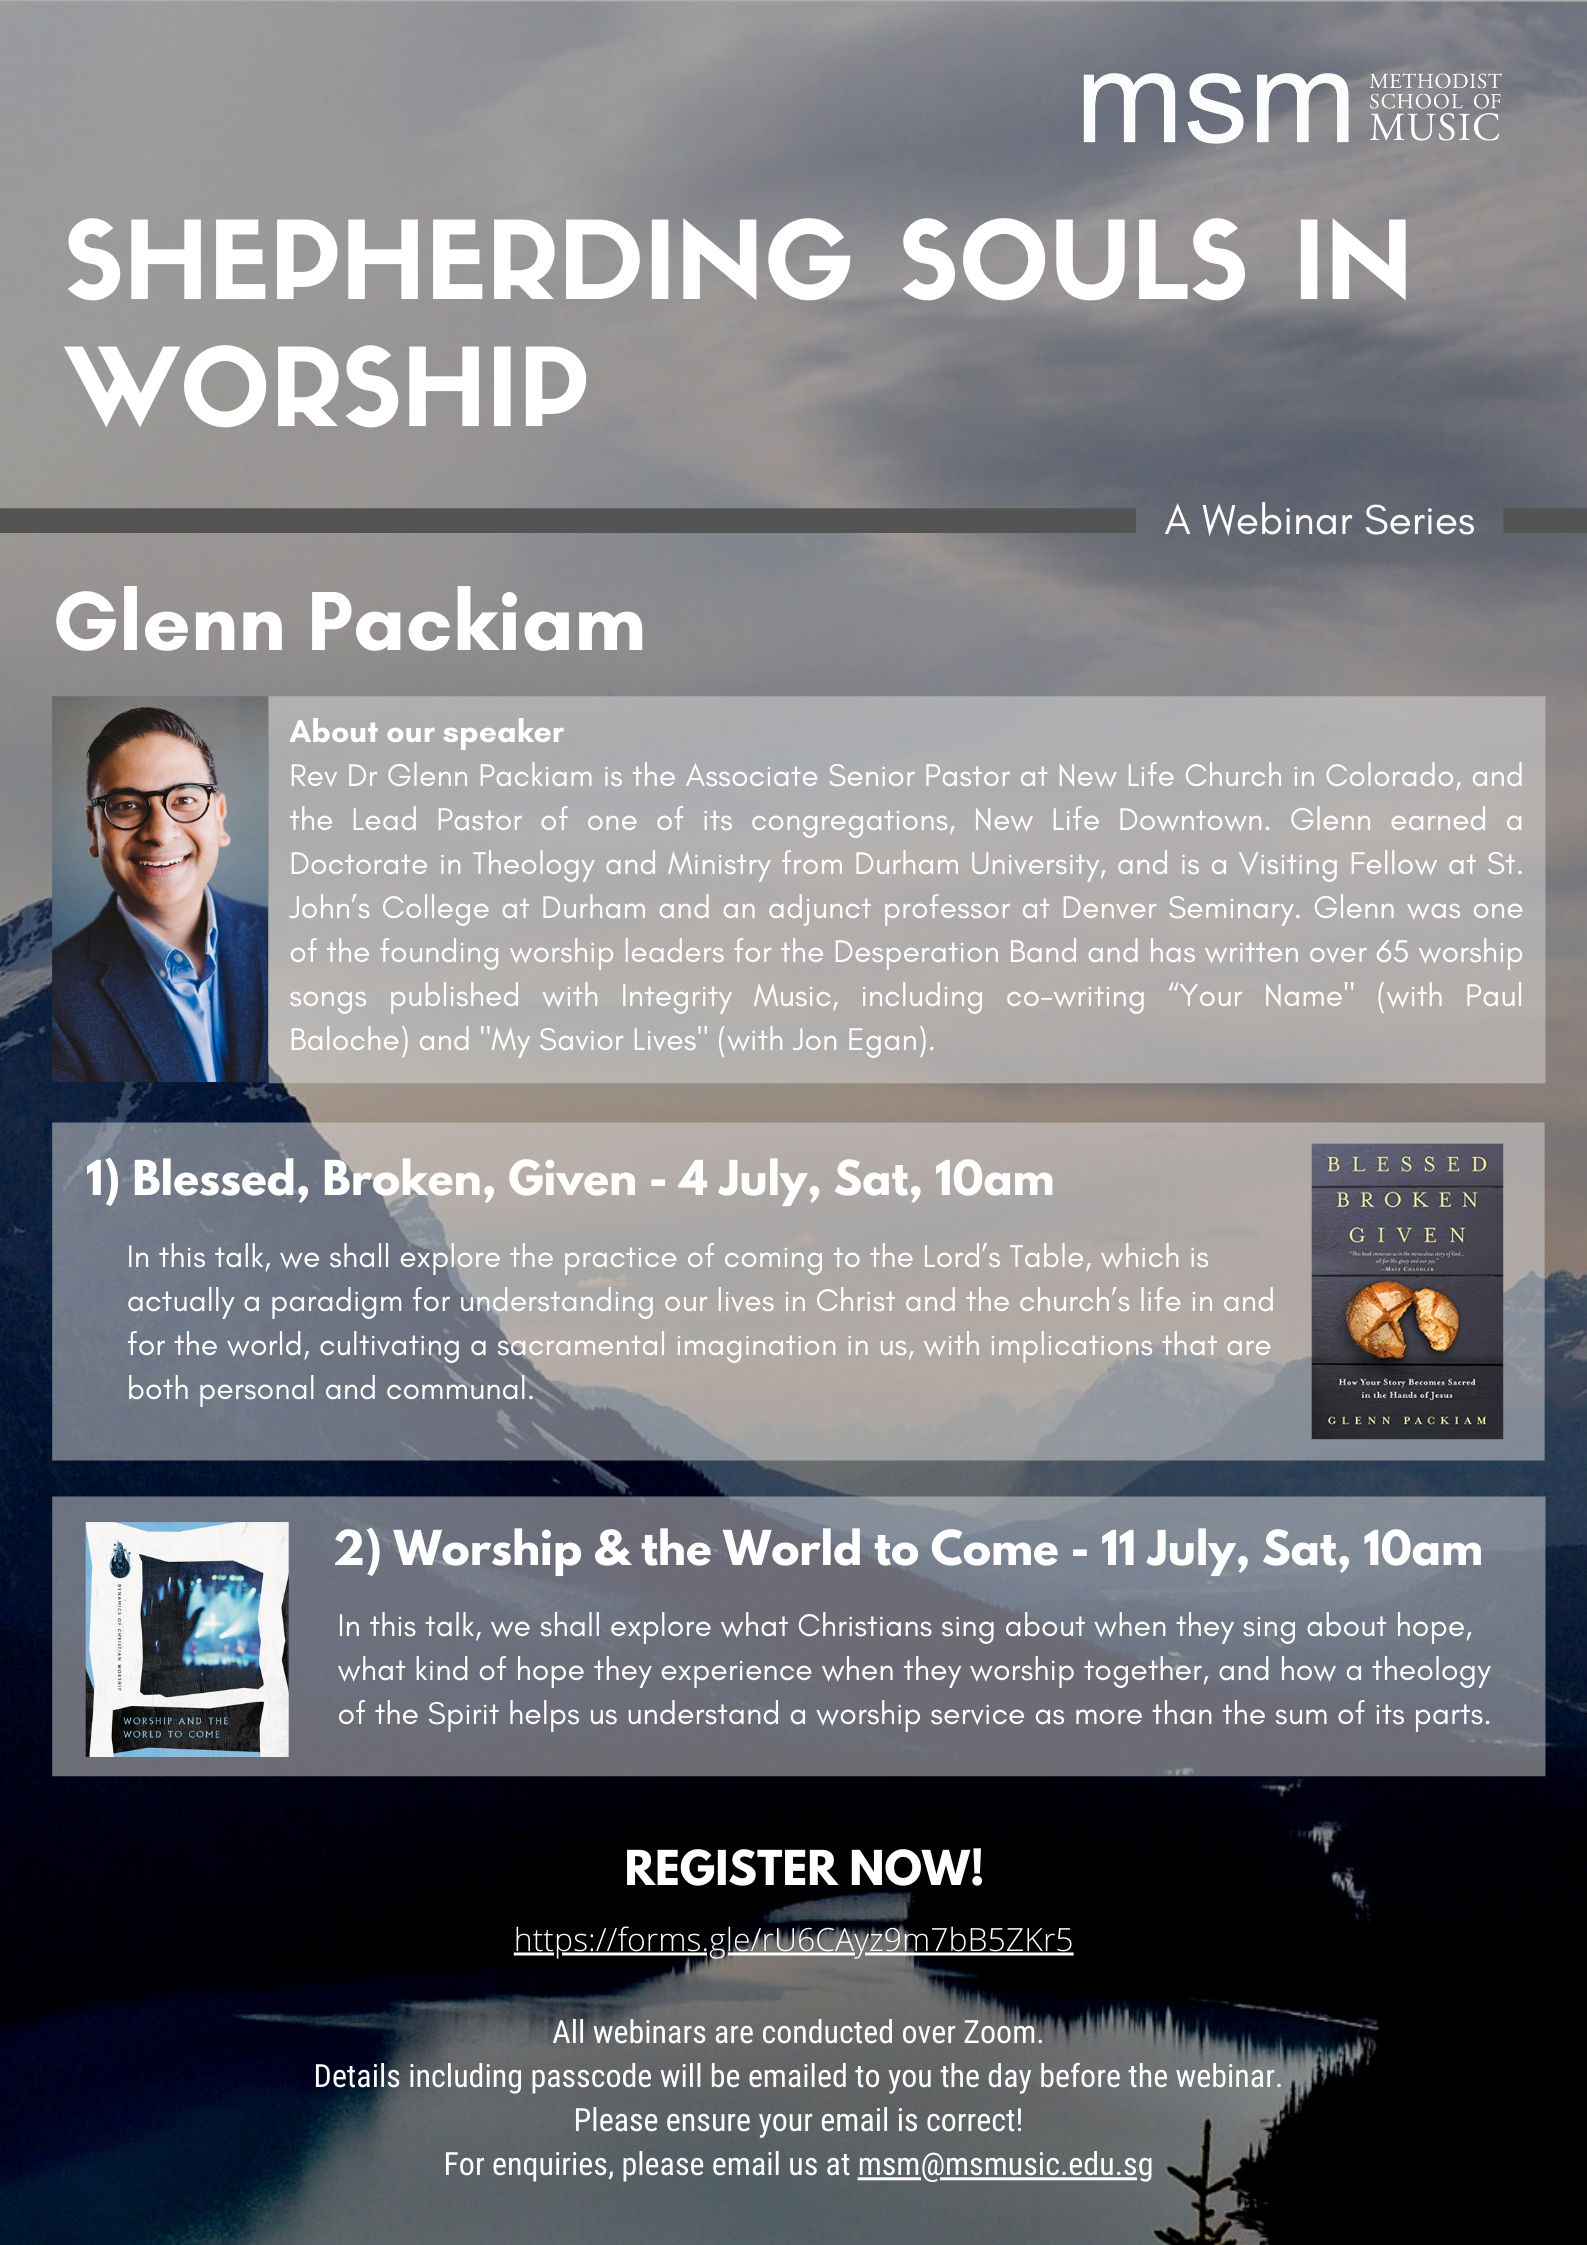 Shepherding Souls in Worship: Webinar Series